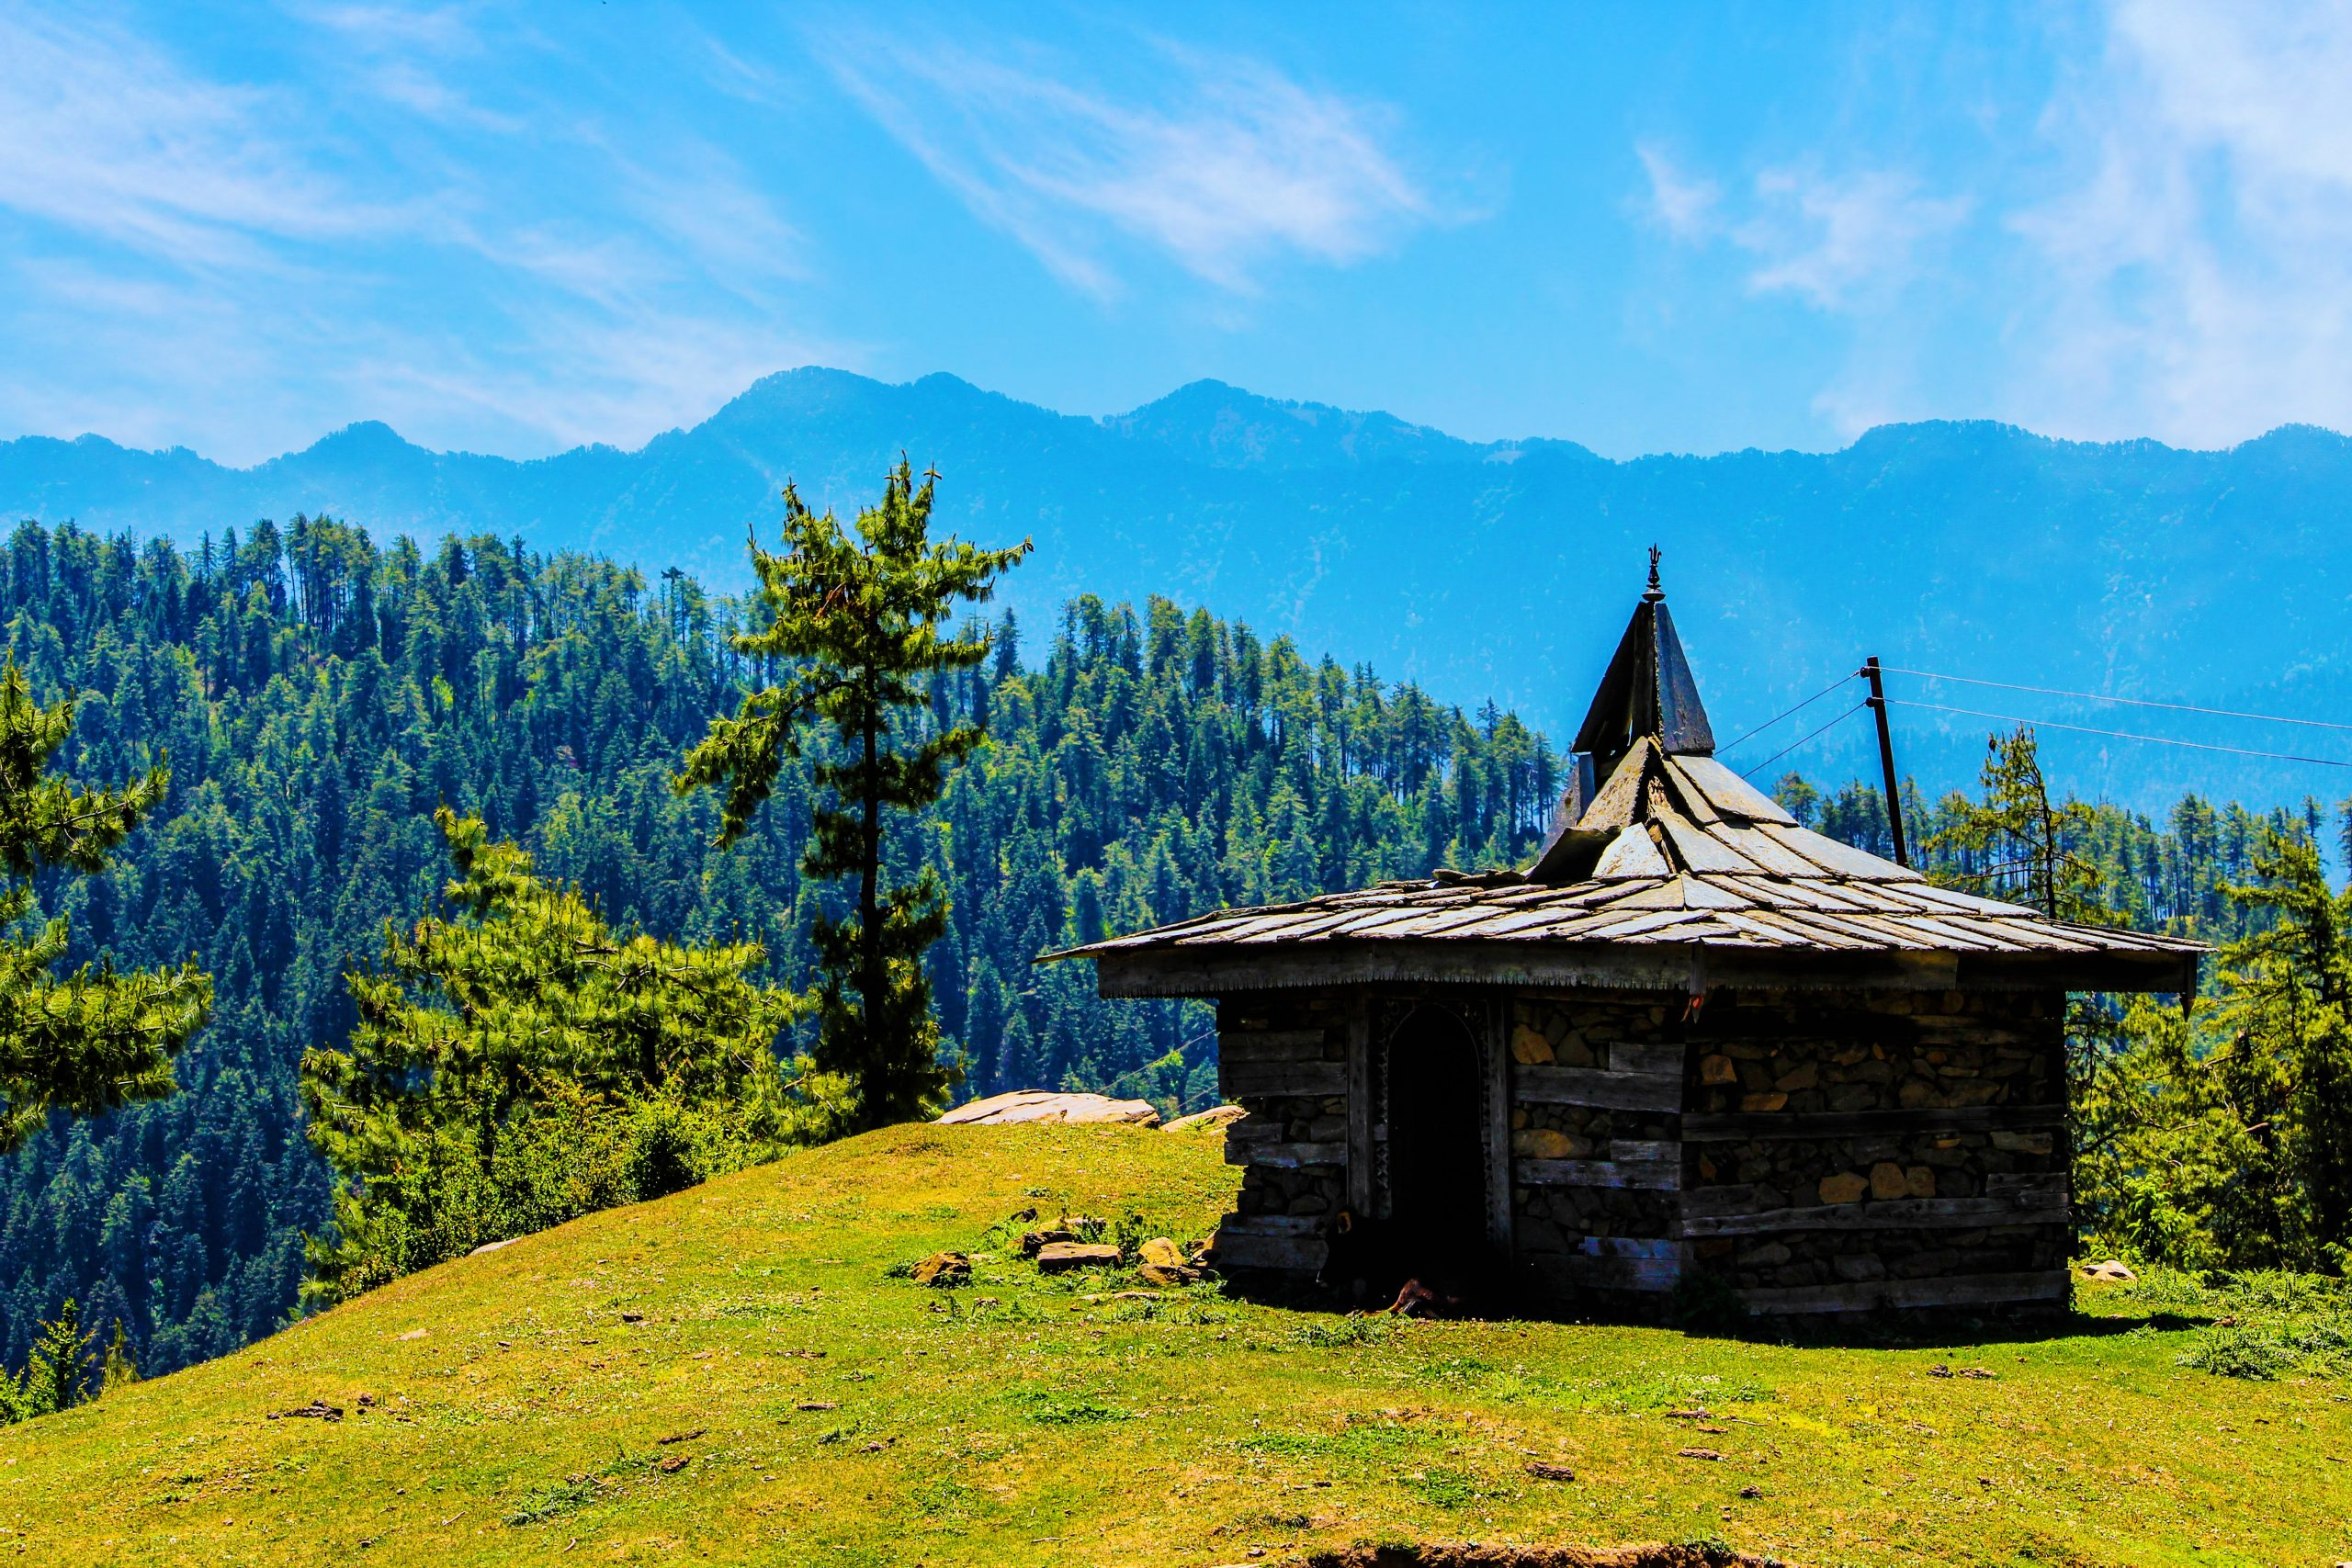 A hut on a mountain top